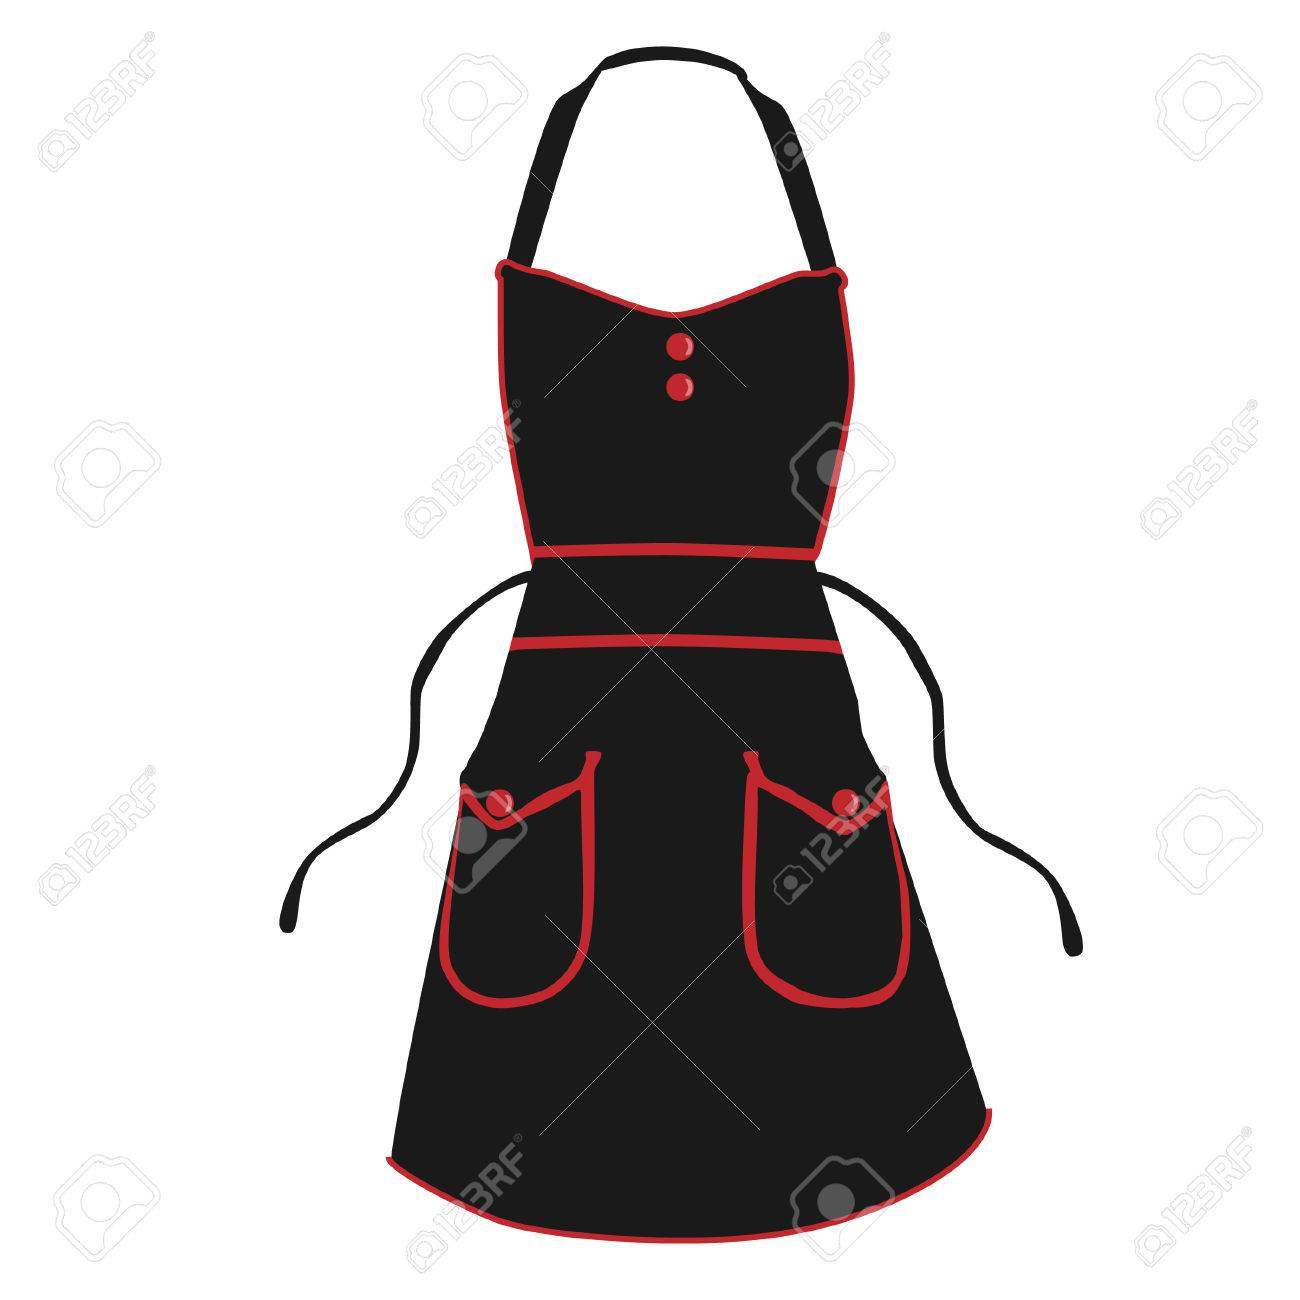 Black Kitchen Apron Vector Isolated, Chef Apron Royalty Free ...